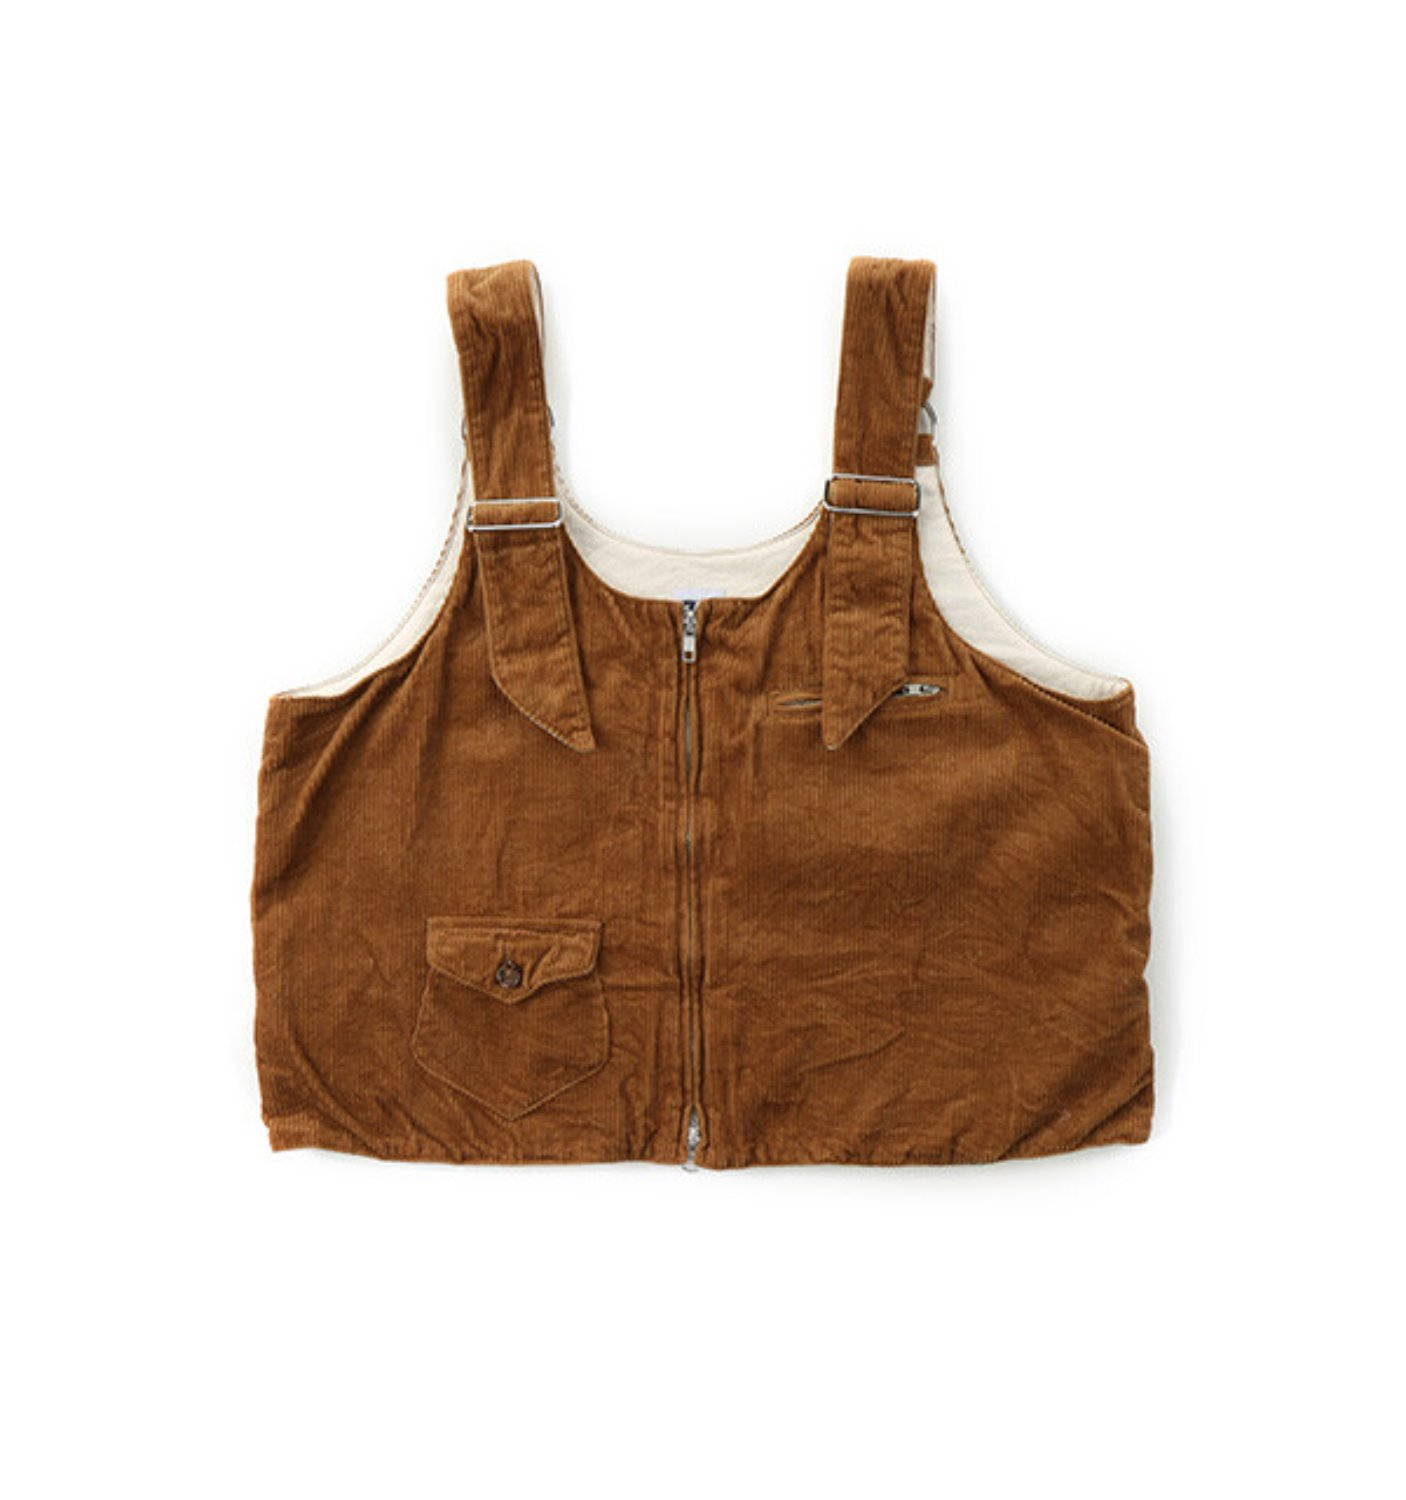 DSD VEST CHESTNUT COTTON 8W CORDUROY